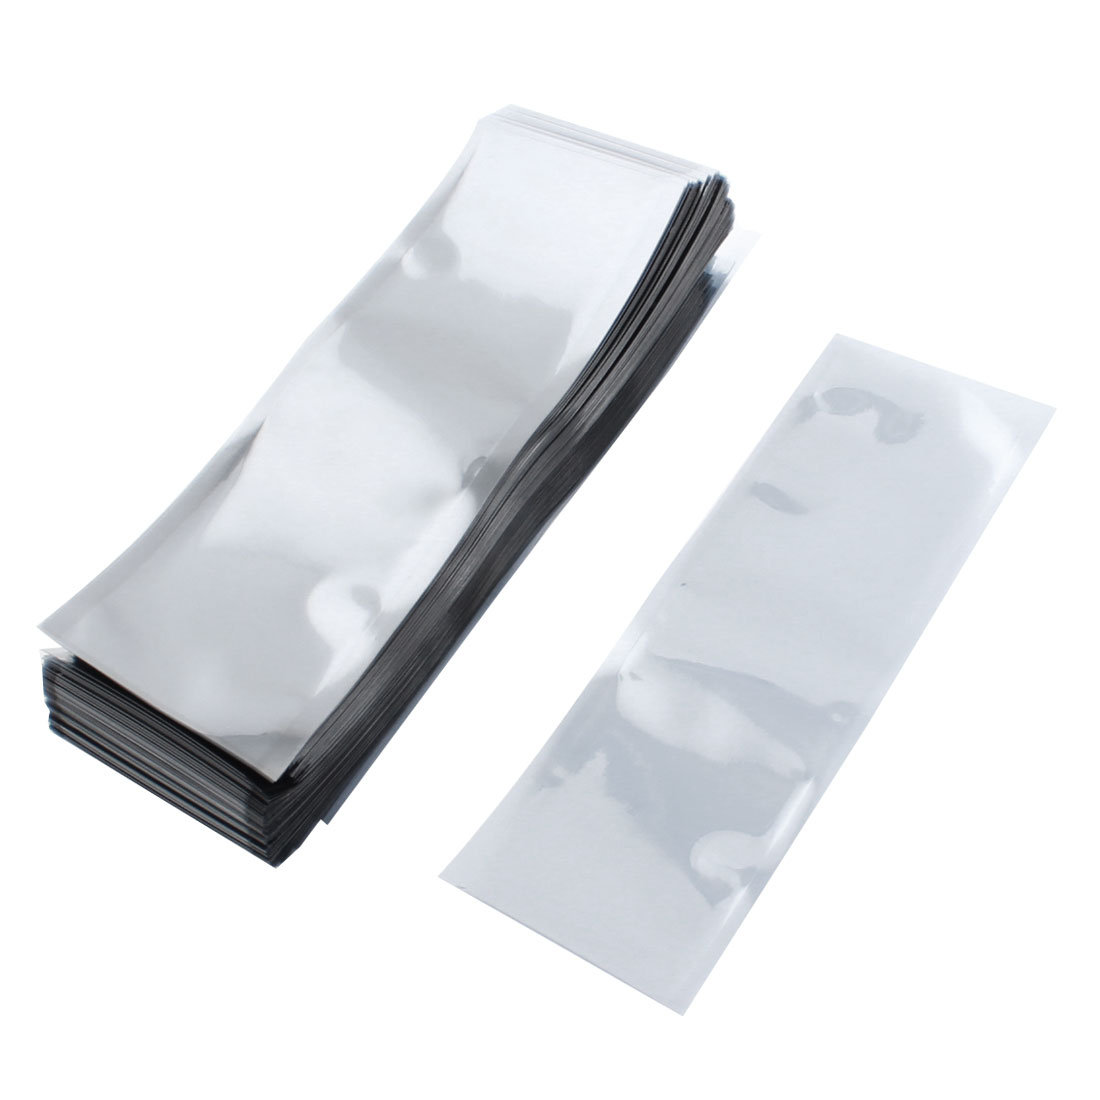 200pcs 6cmx18cm Rectangle Open Top Clear Gray Plastic Anti-static Shielding Bags Packagings Protectors for PCB Board